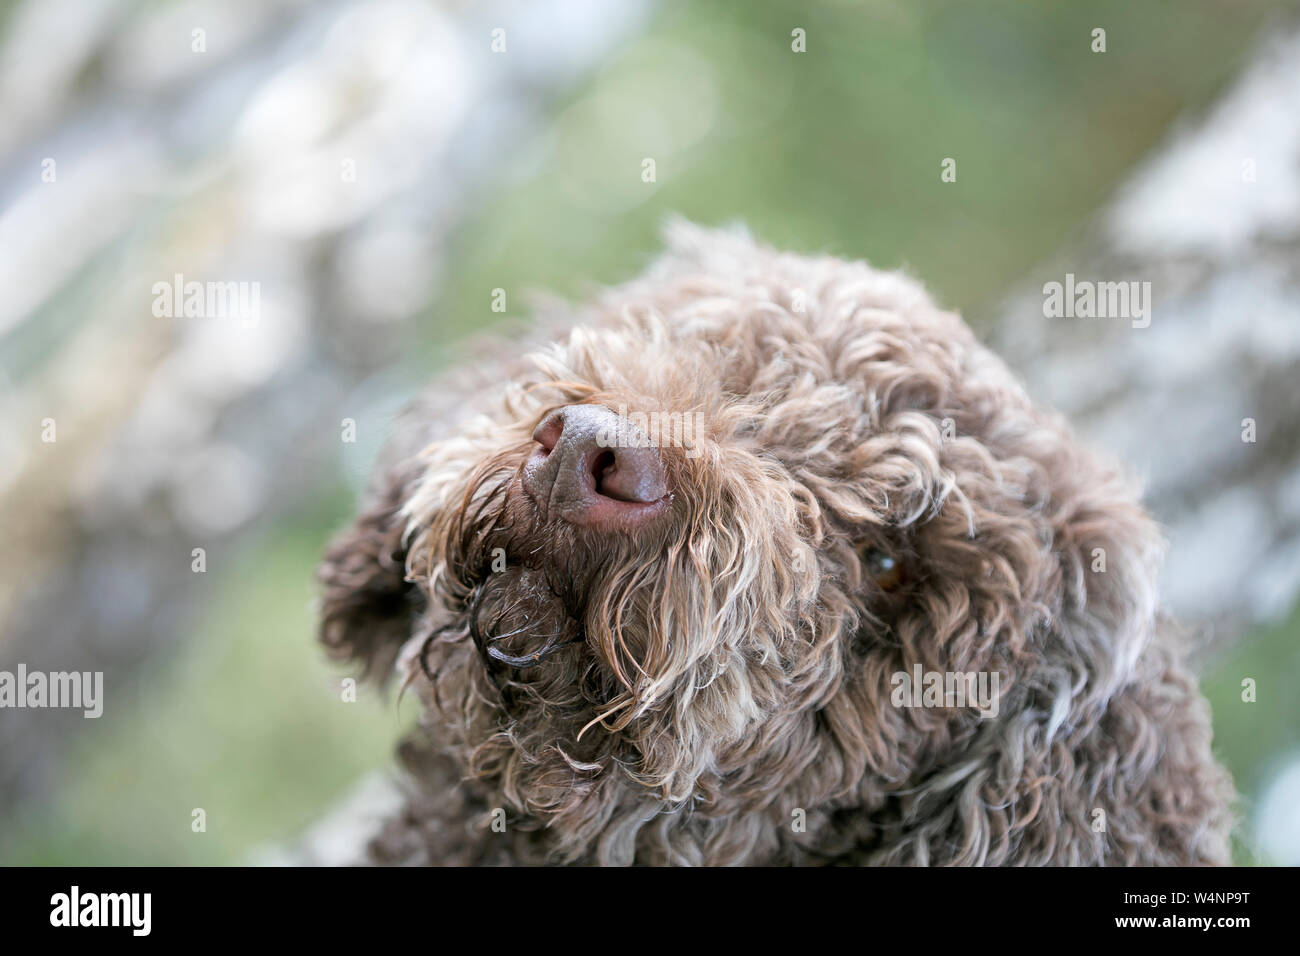 Truffle dog portrait in wild forest macro background fine art high quality prints products fifty megapixels lagotto romagnolo Stock Photo